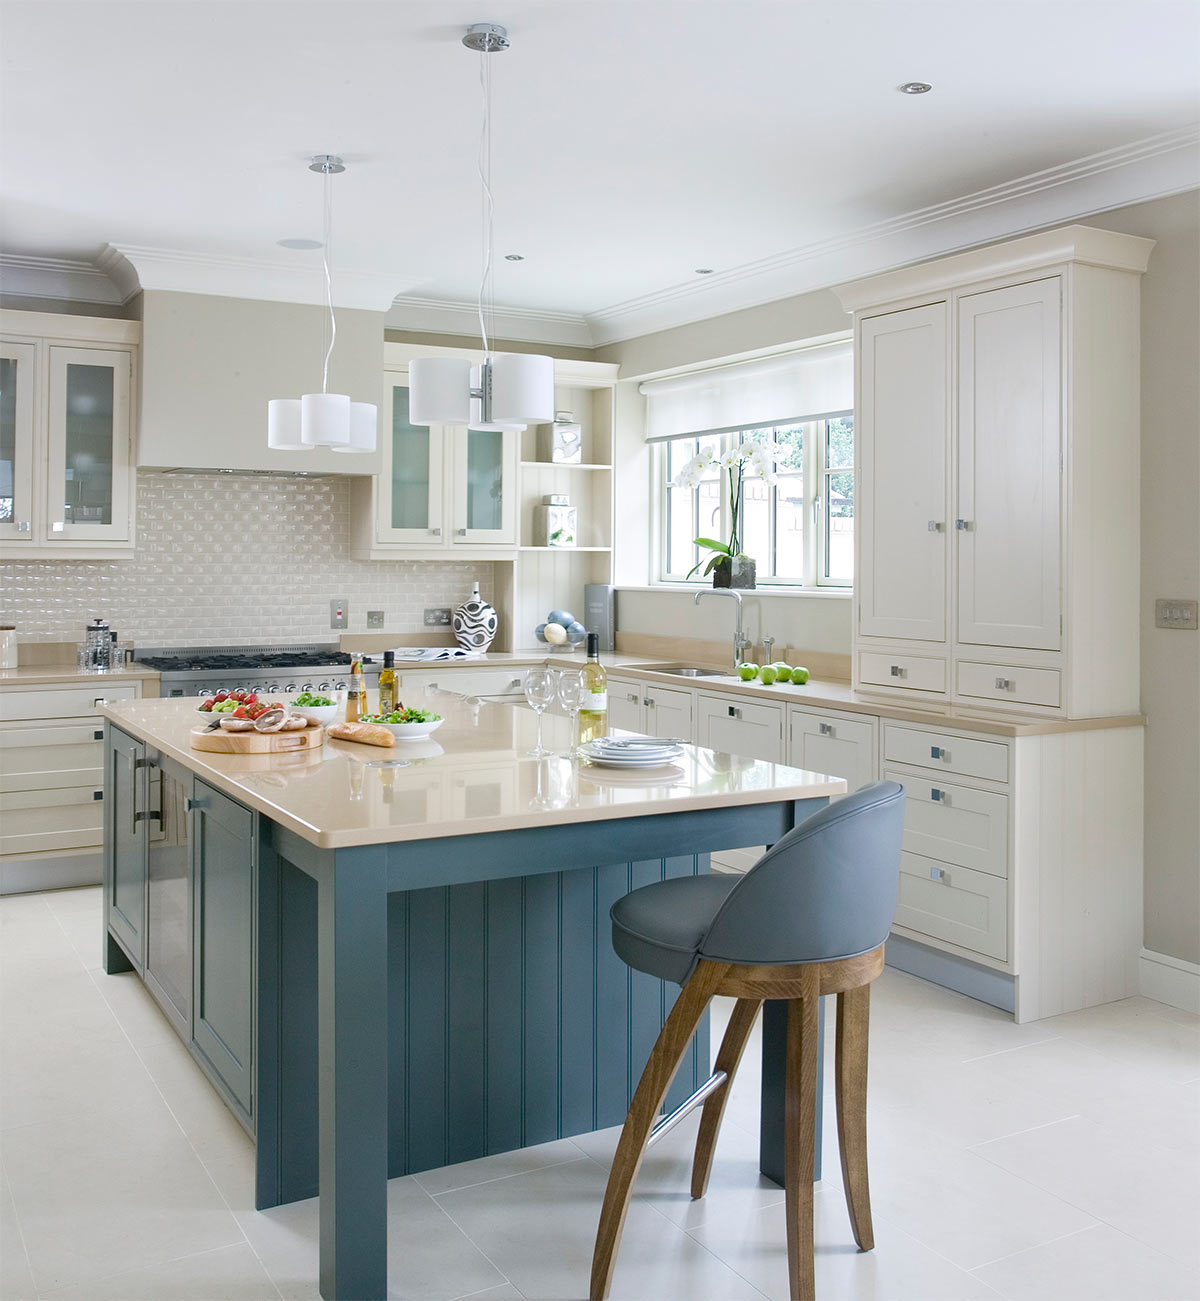 Grand Design Kitchens Cleethorpes